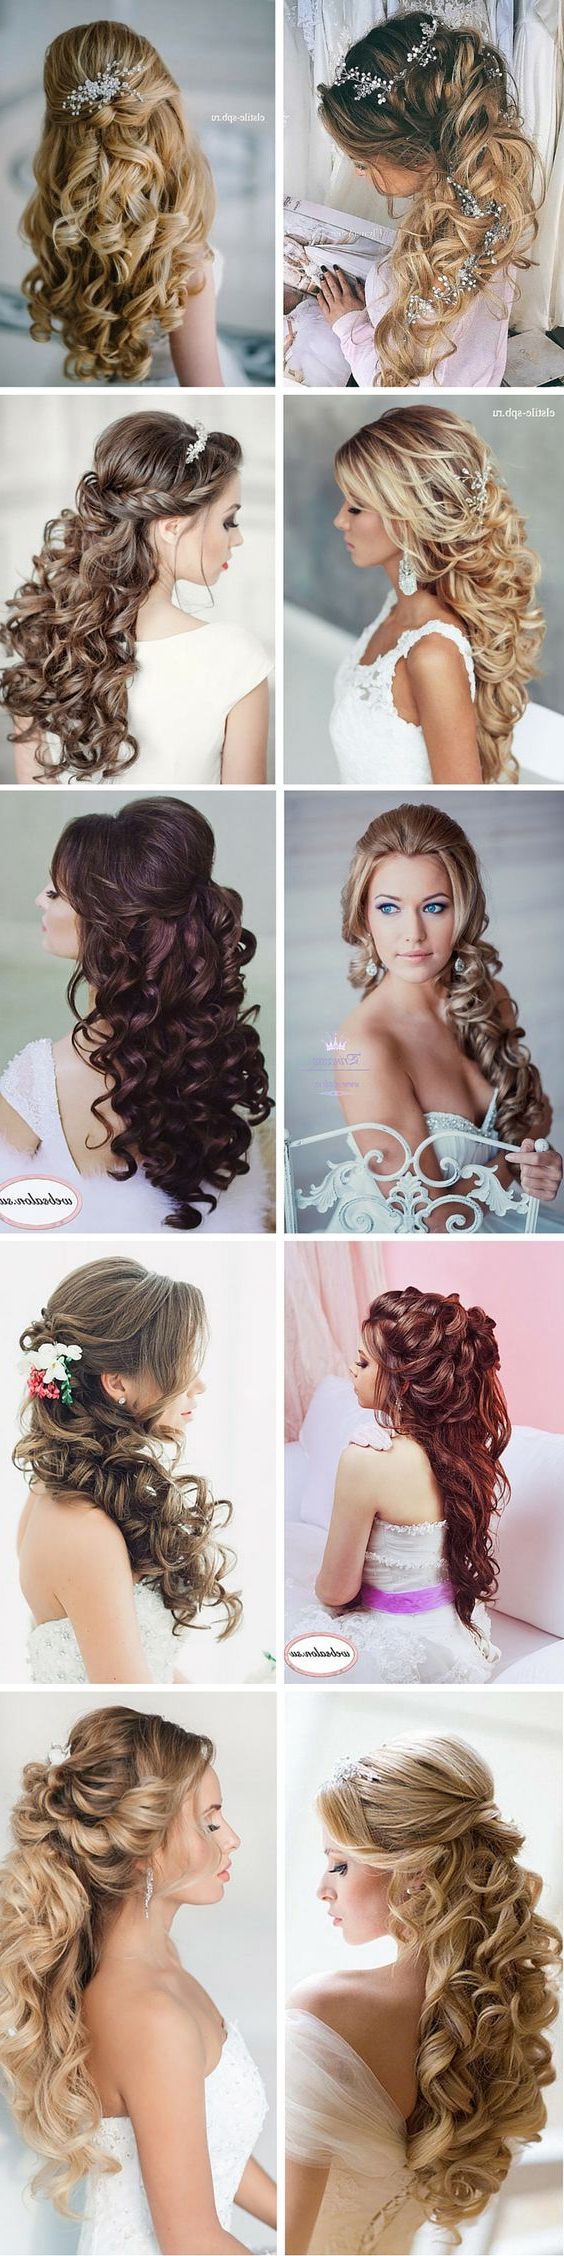 100 romantic long wedding hairstyles 2018 curls half up updos elegant curly half up half down wedding hairstyles junglespirit Image collections